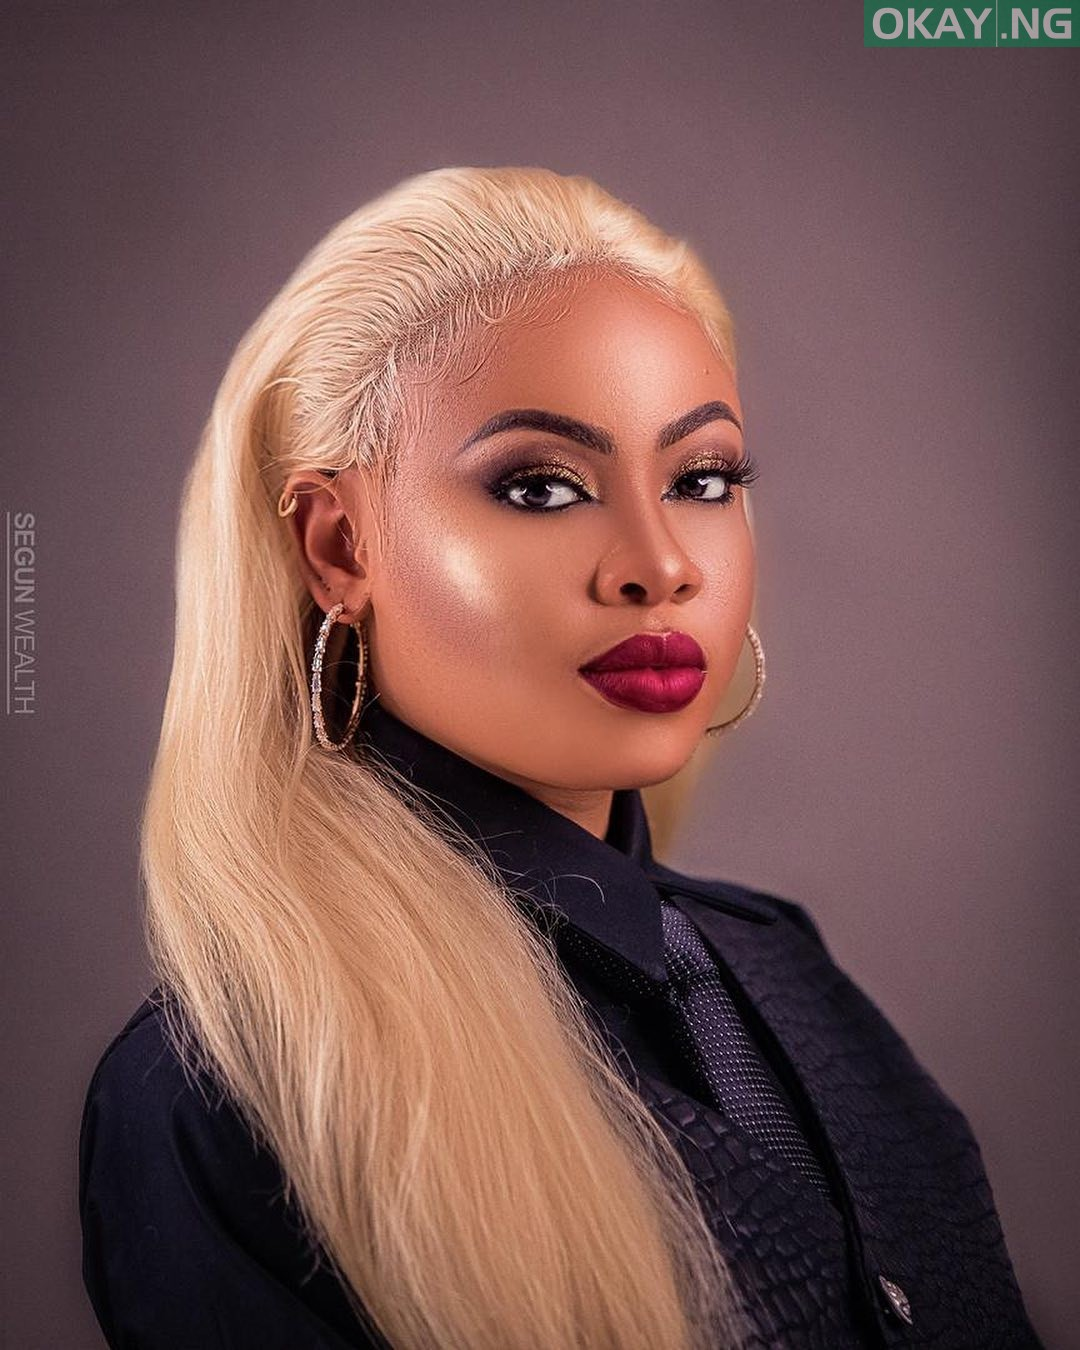 Nina Ivy 23 okay ng 3 - Nina Ivy turns 23, shares stunning pictures to celebrate birthday